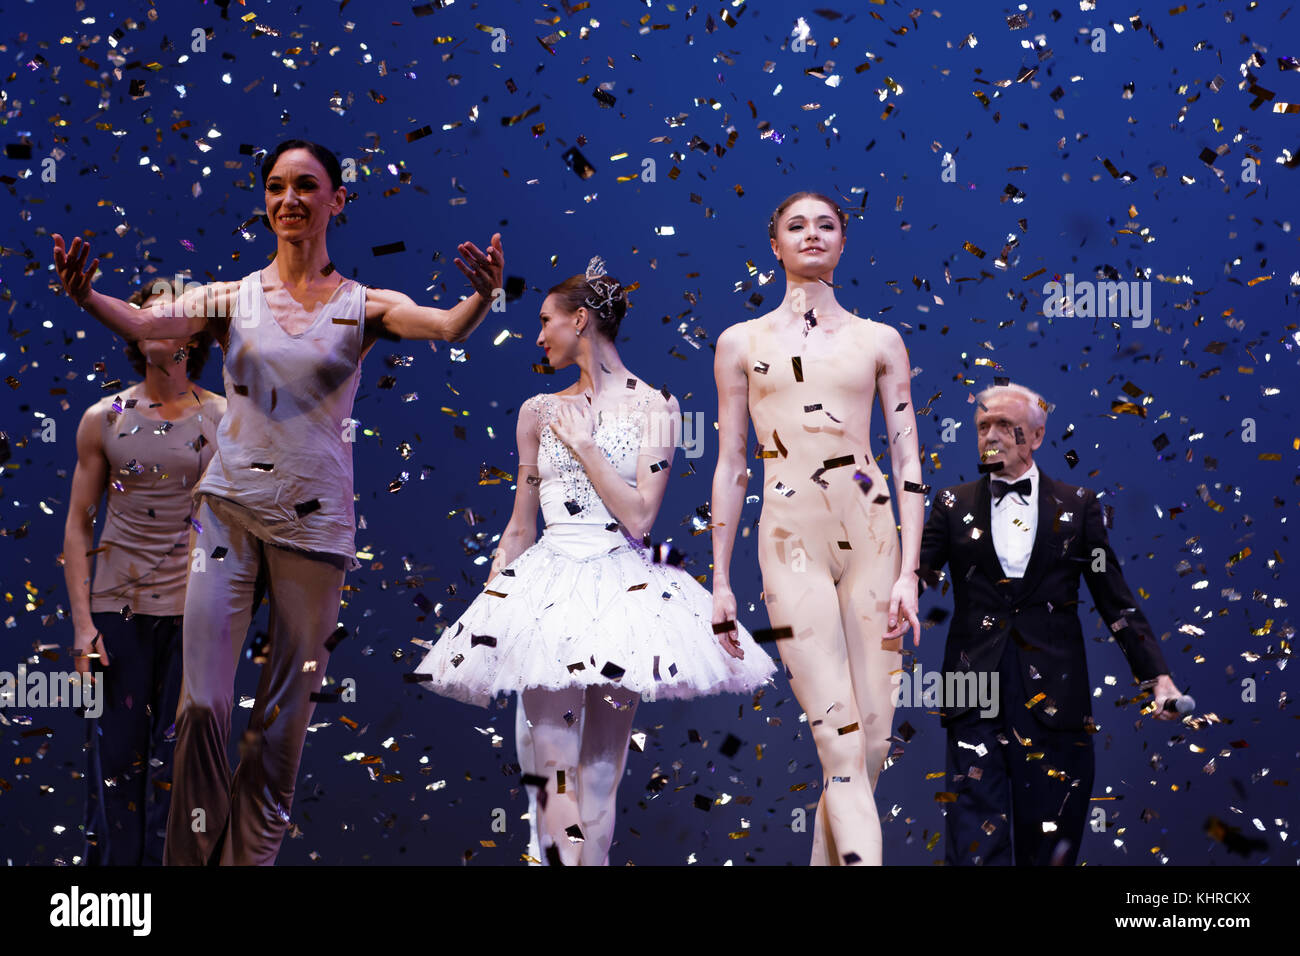 St. Petersburg, Russia - November 16, 2017: Ballet dancers on the stage after anniversary gala concert of Oleg Vinogradov - Stock Image